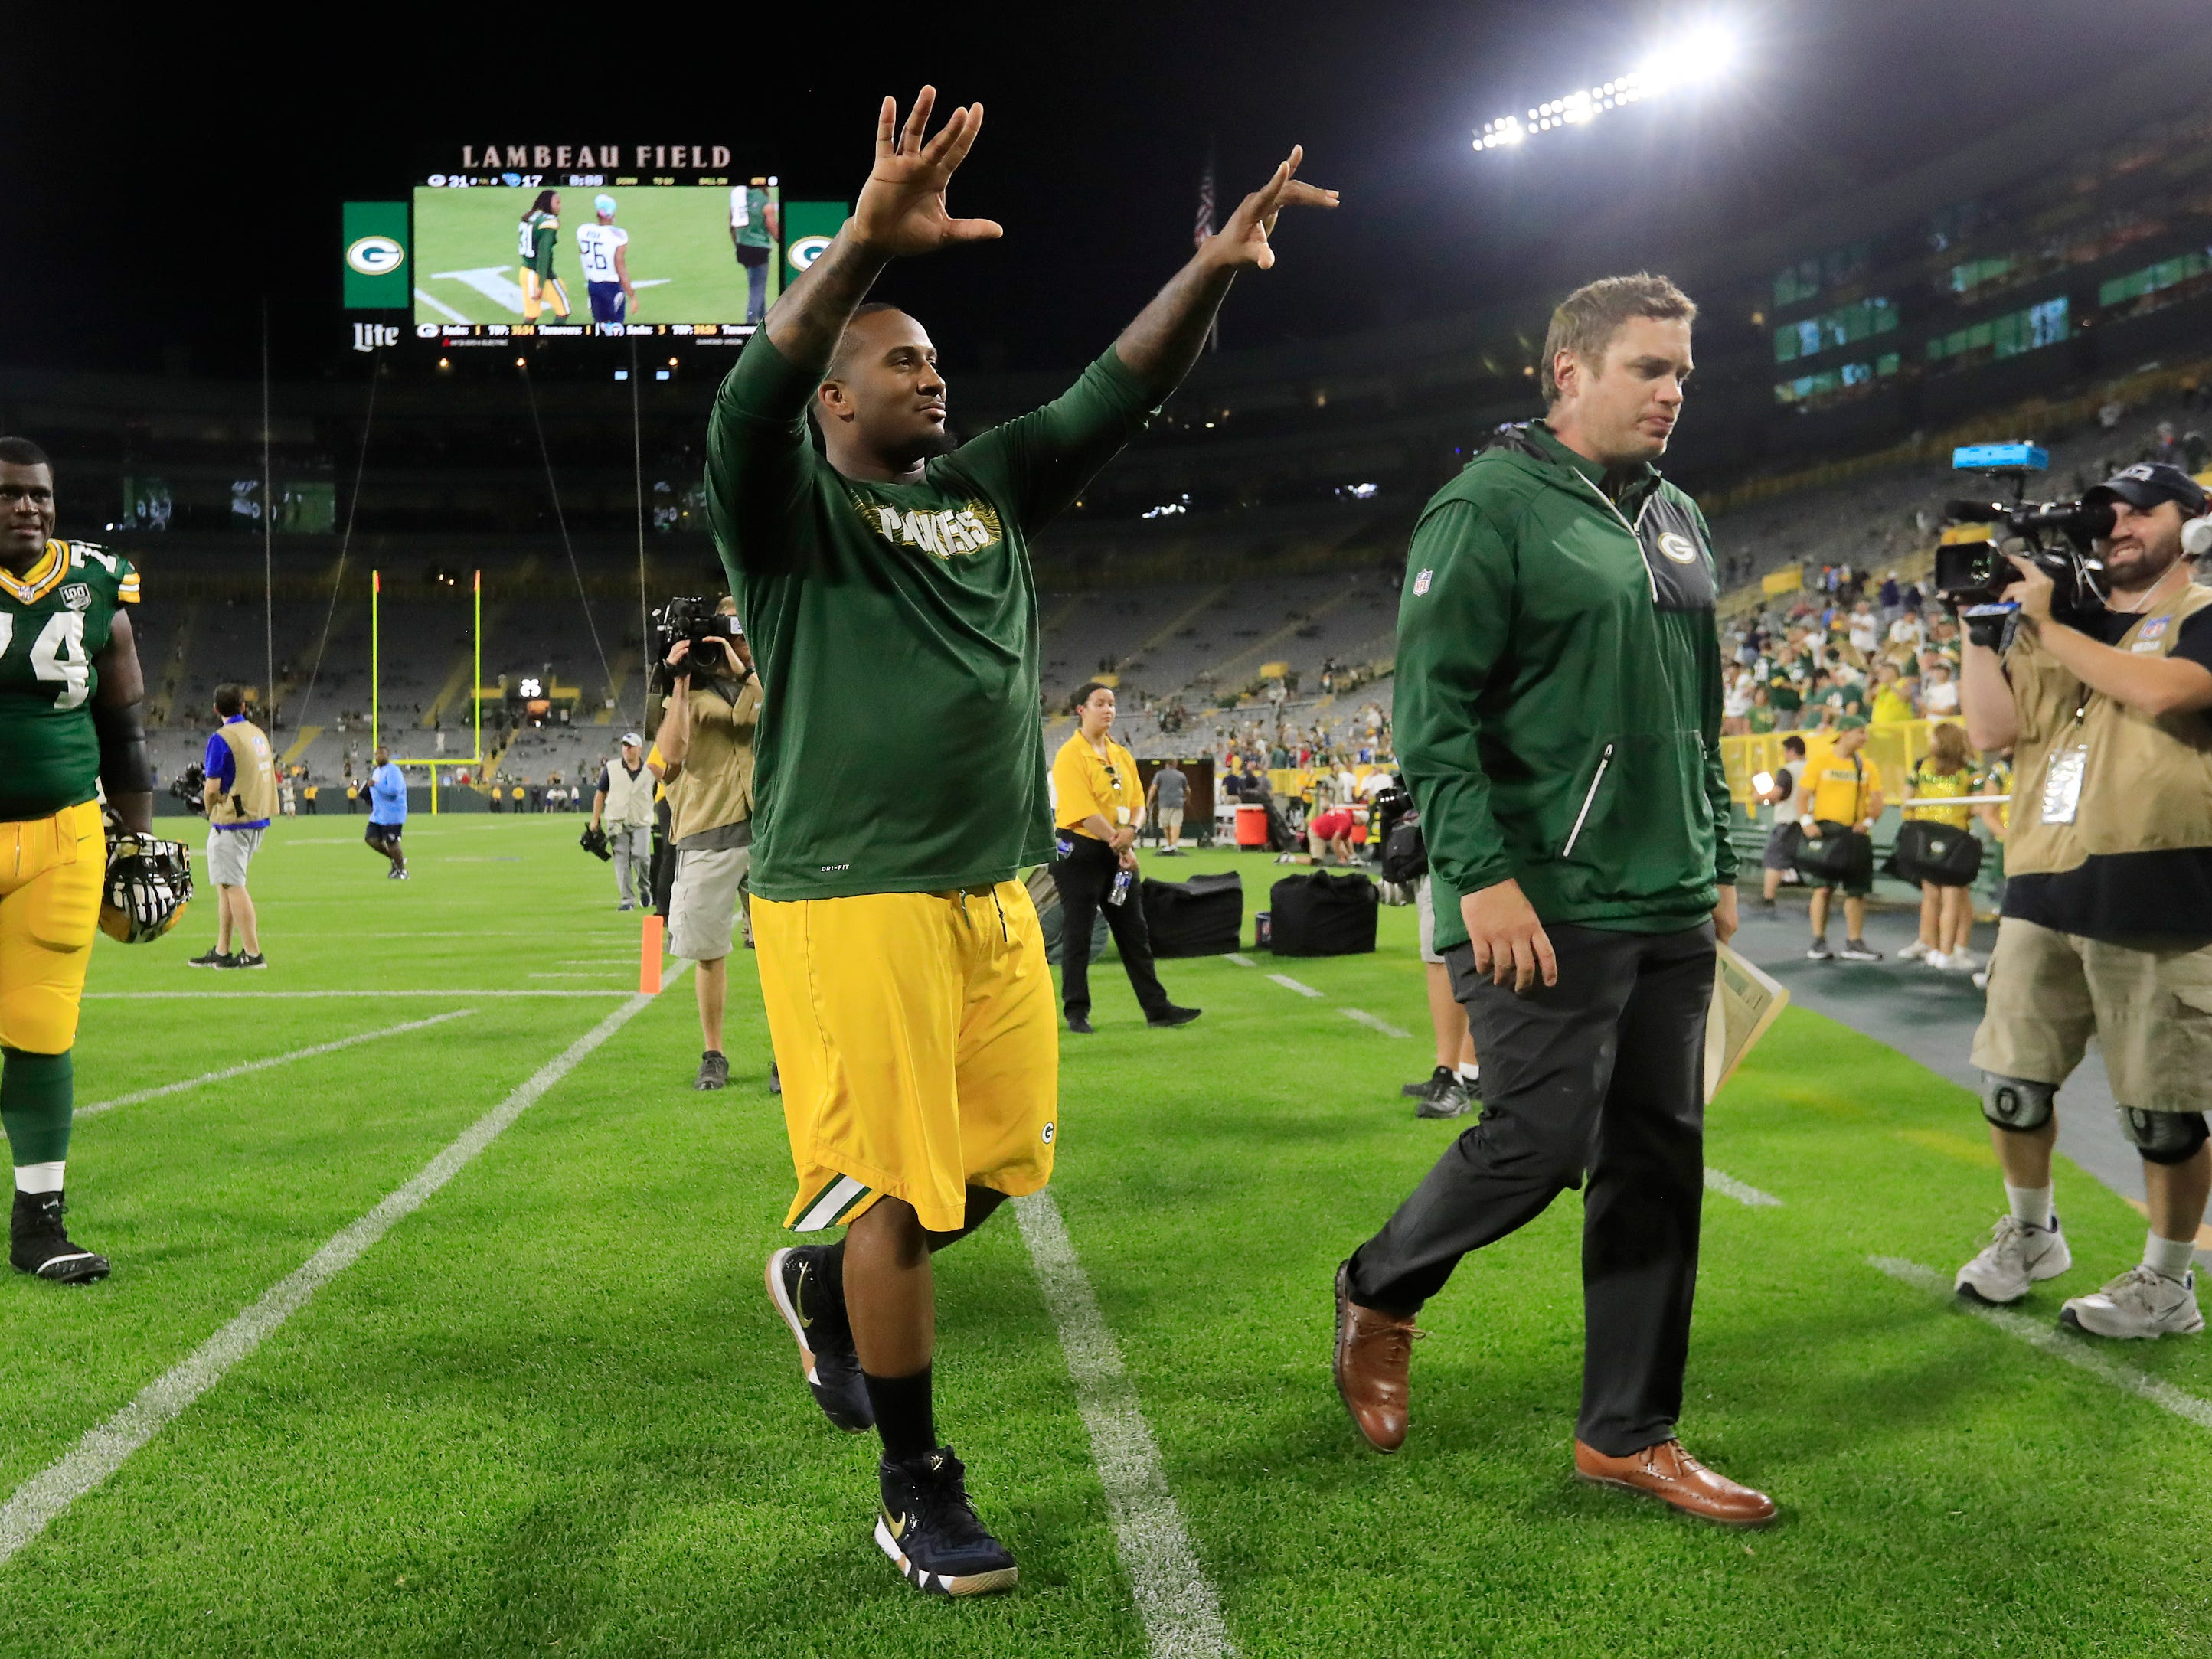 Green Bay Packers defensive tackle Mike Daniels (76) walks off the field after an NFL preseason game at Lambeau Field on Thursday, August 9, 2018 in Green Bay, Wis.